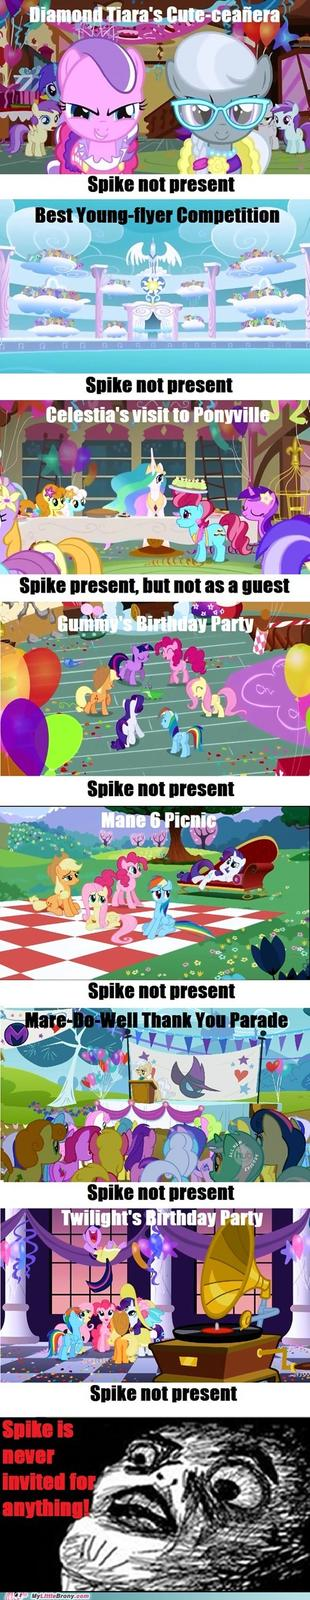 my-little-pony-friendship-is-magic-brony-spikes-loneliness.jpg